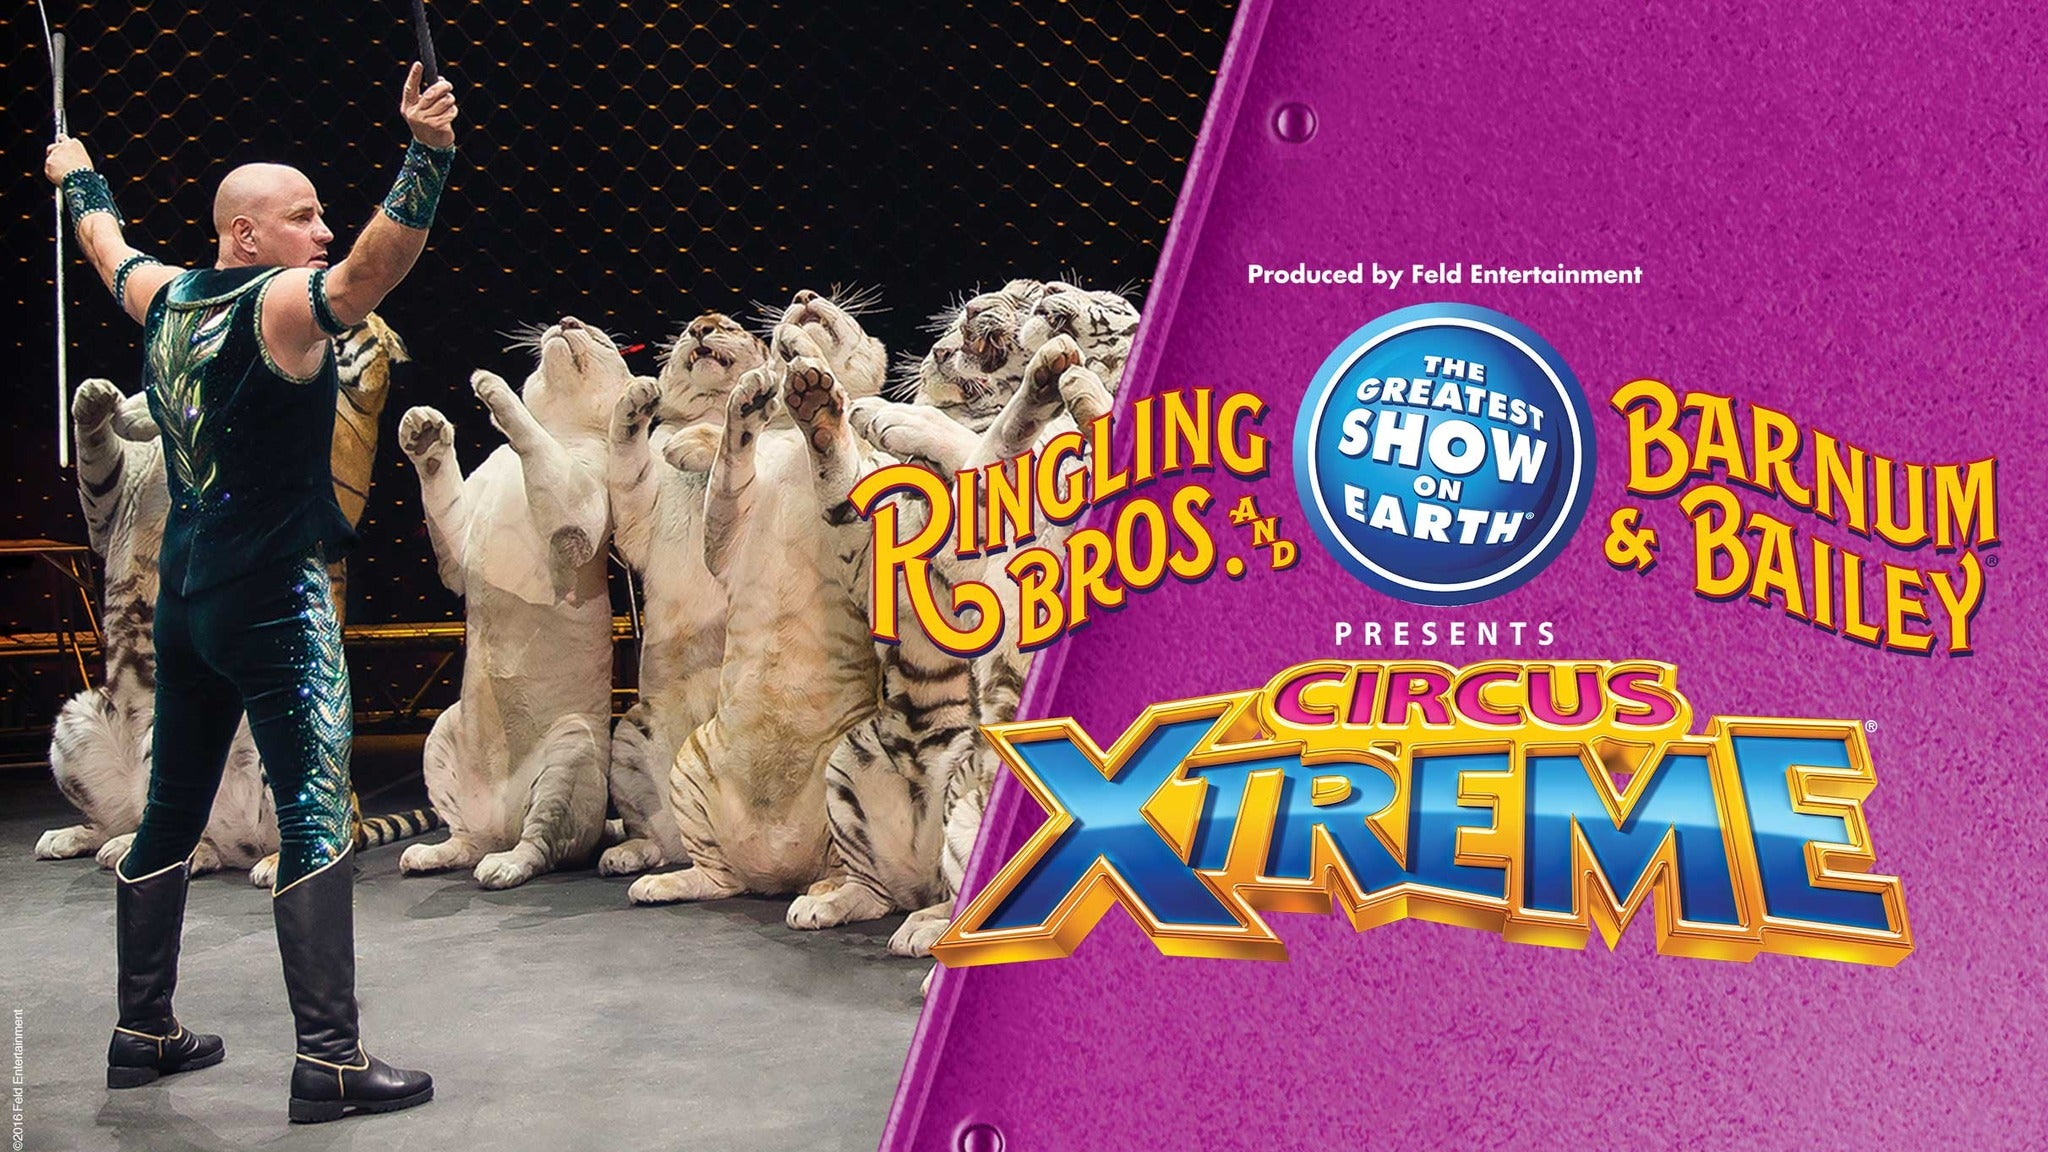 Ringling Bros. and Barnum & Bailey Presents Circus XTREME - San Francisco, CA 94115